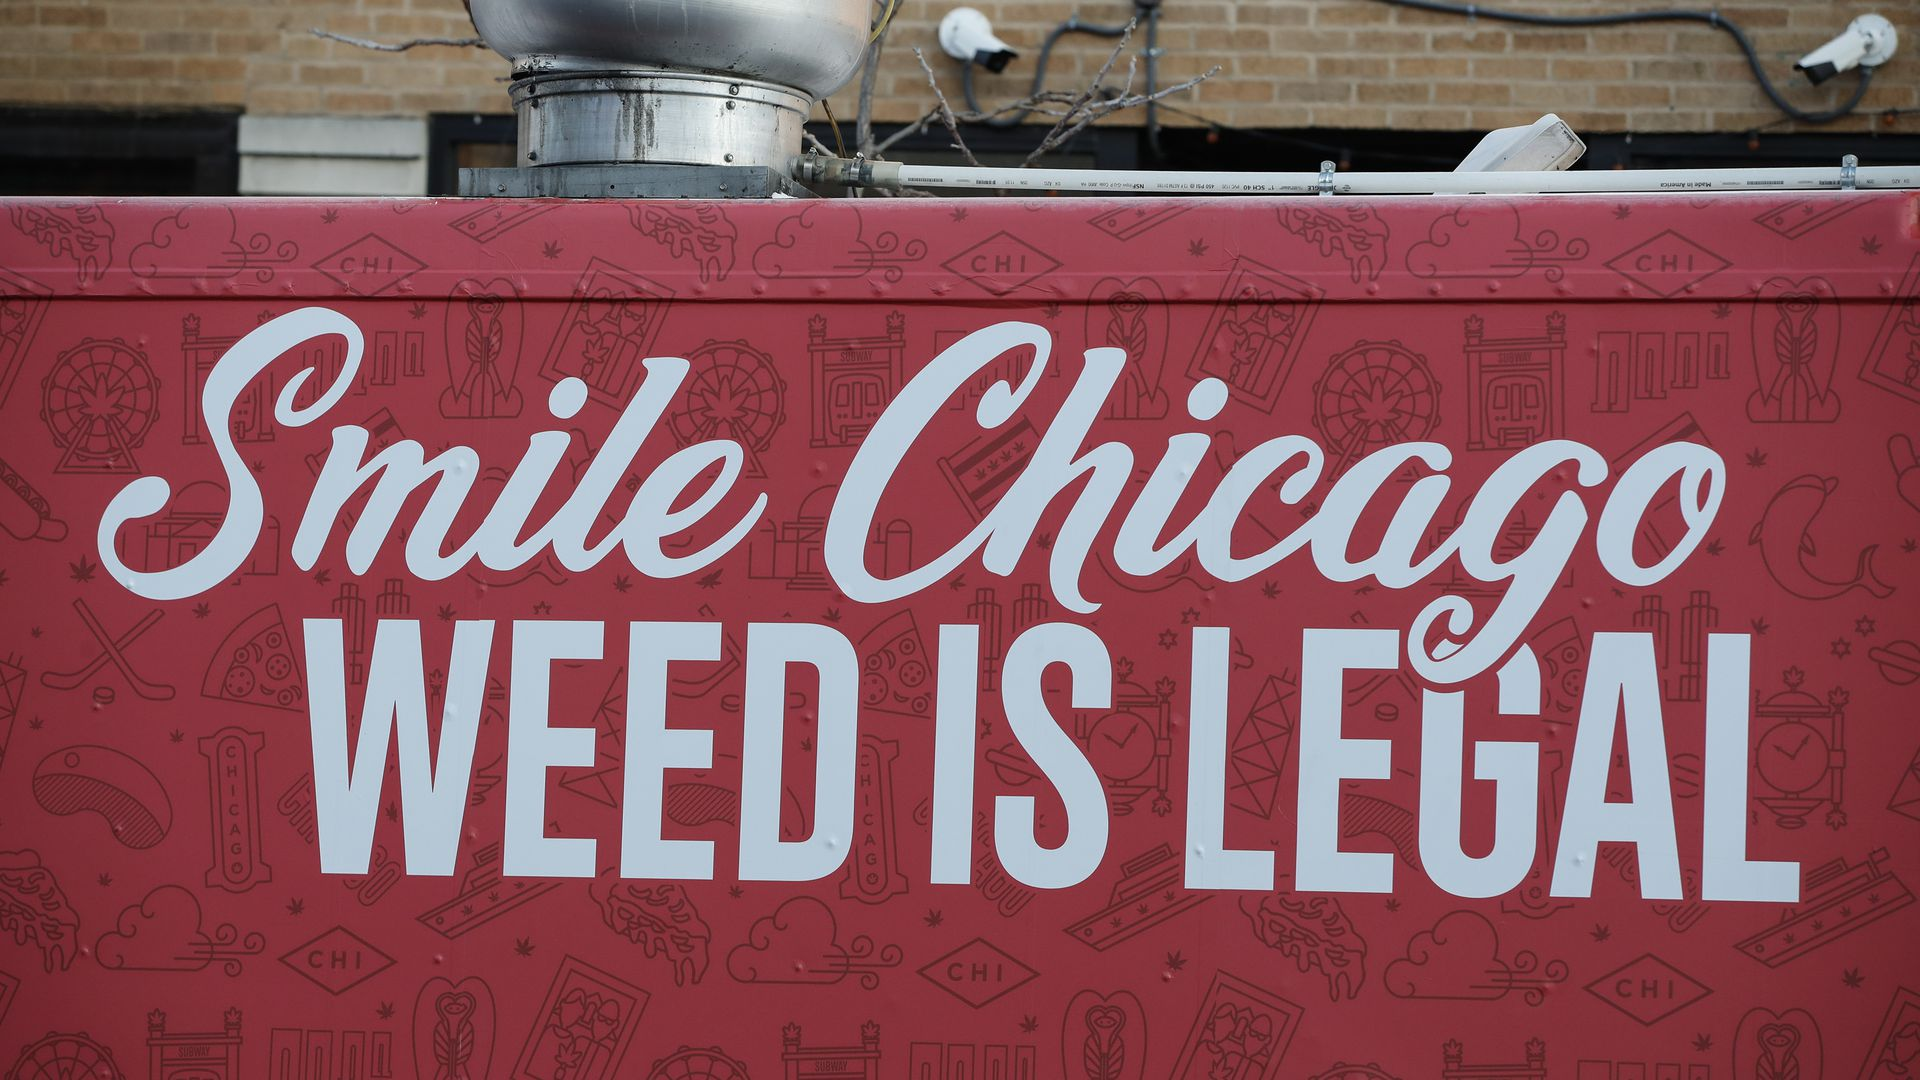 Image result for illinois weed legal